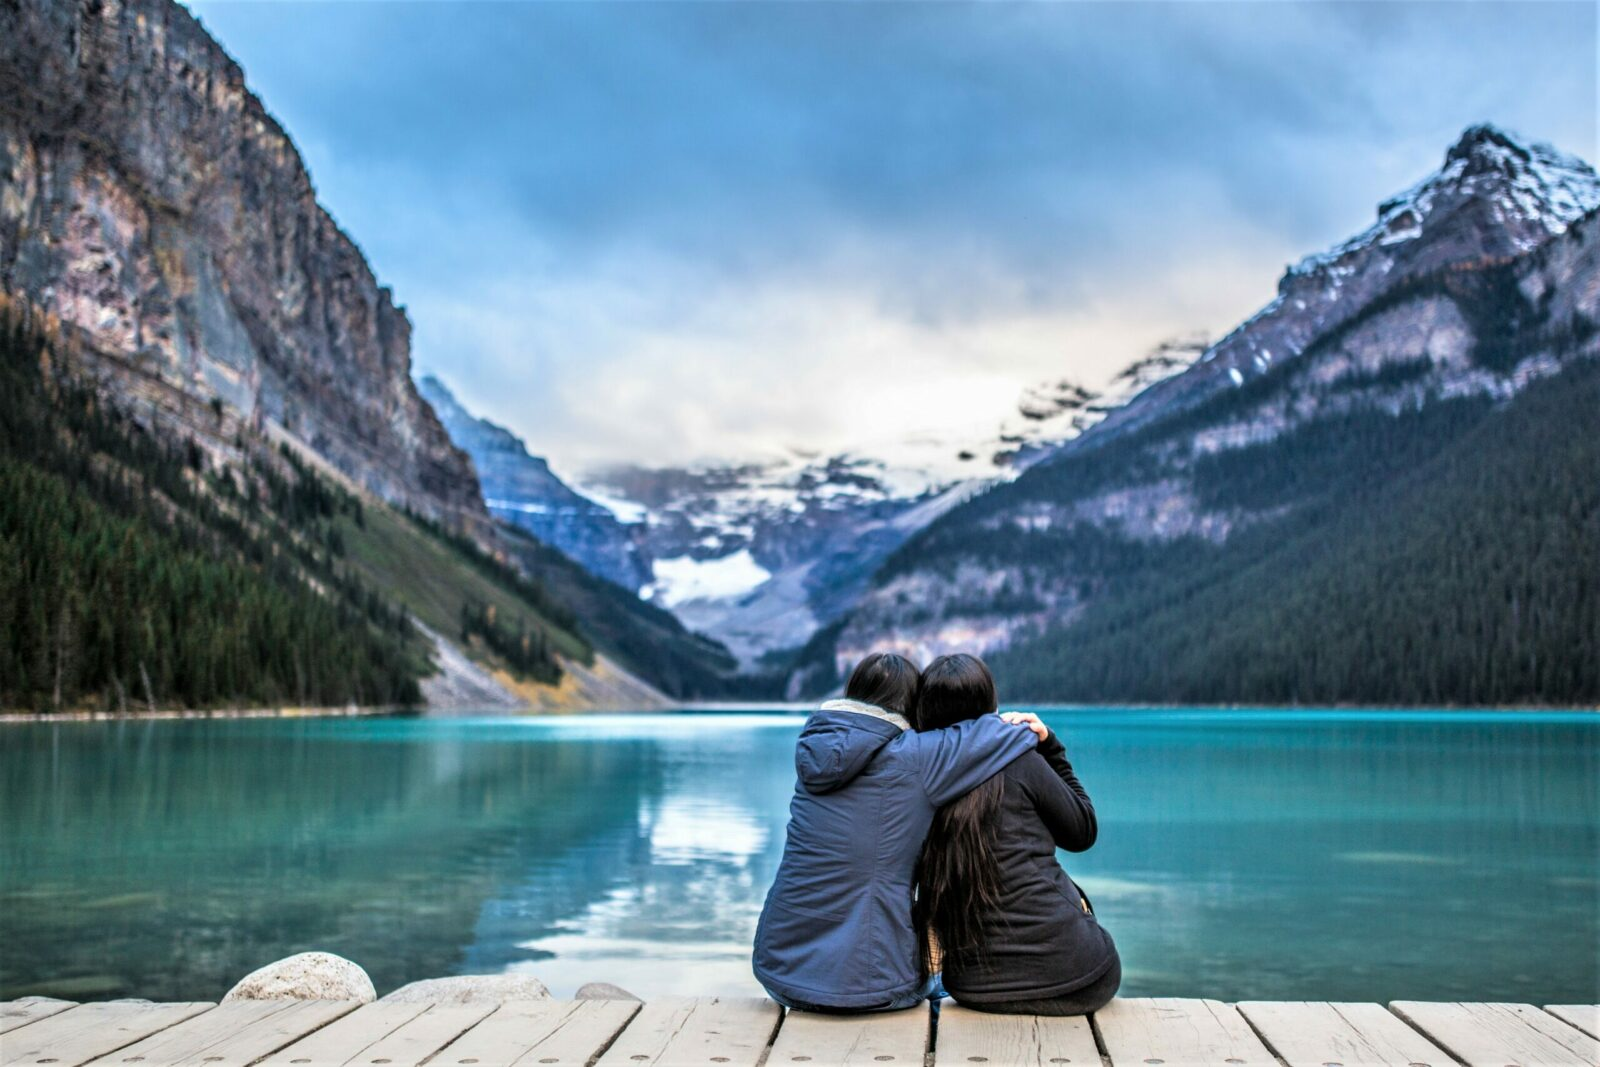 Image depicts two people sitting on a dock looking at Lake Louise. One person has their arm around the other's shoulder.